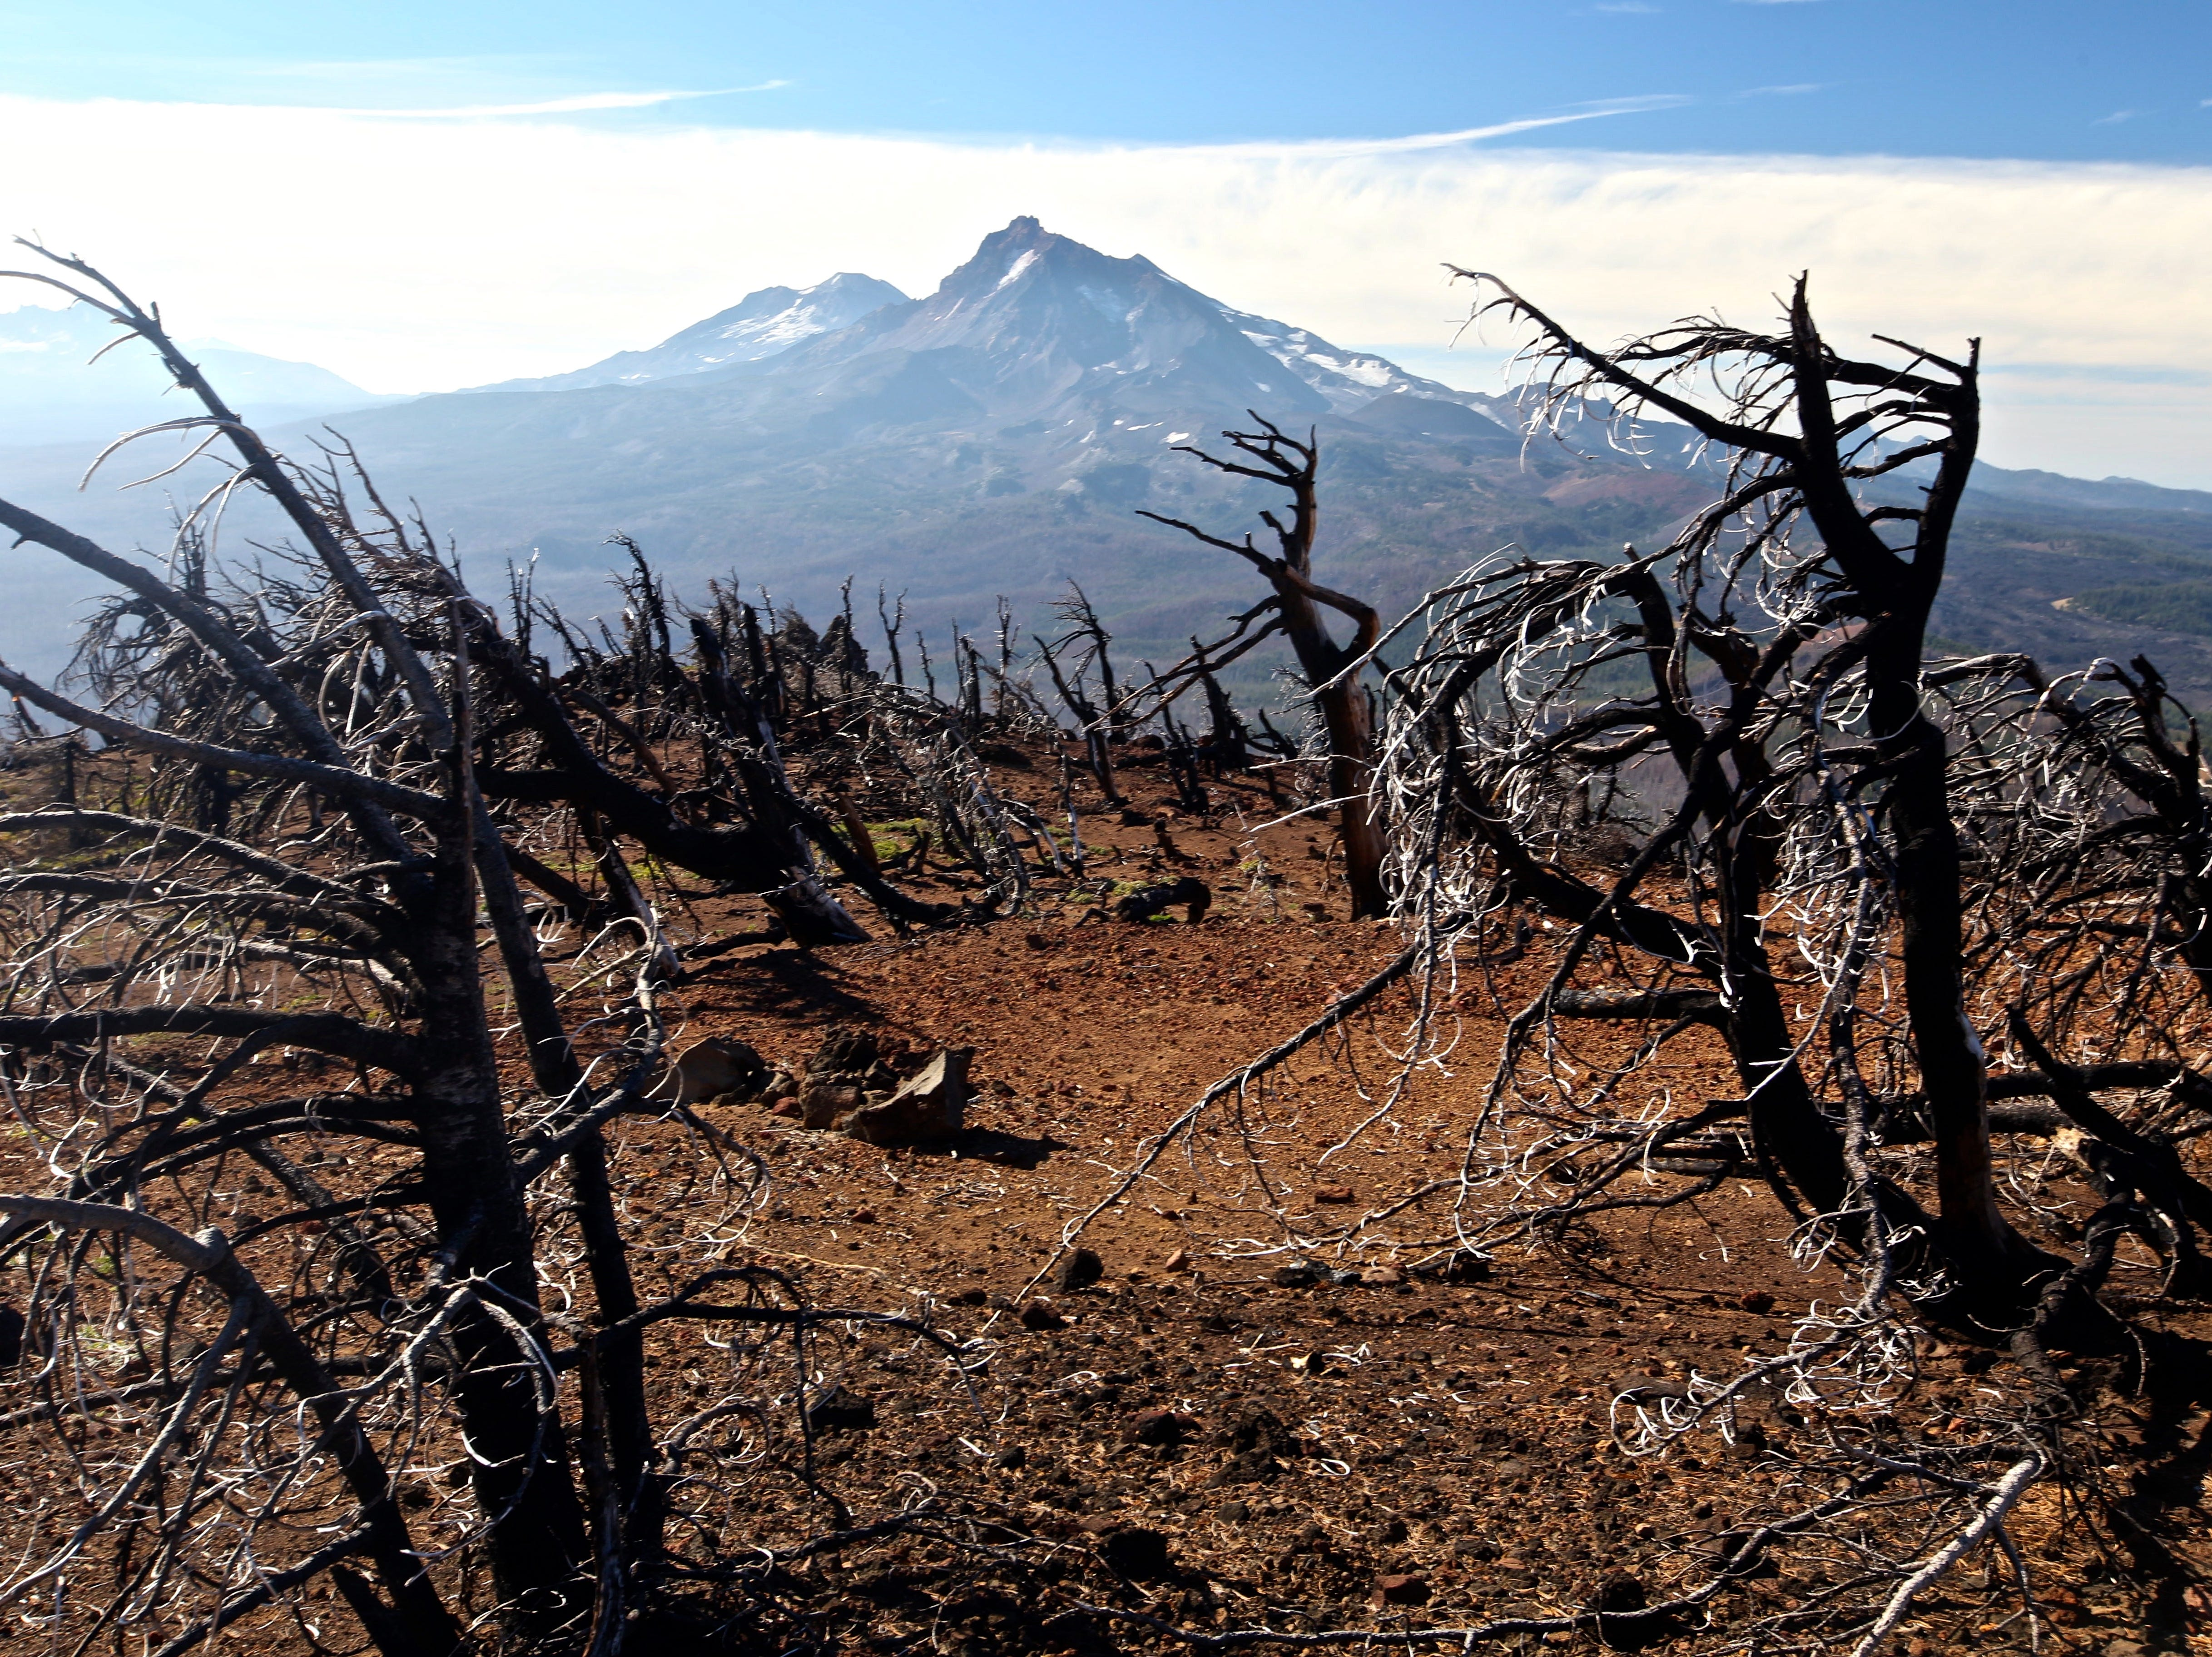 Views of North and Middle Sister through burned forest on Black Crater Trail.